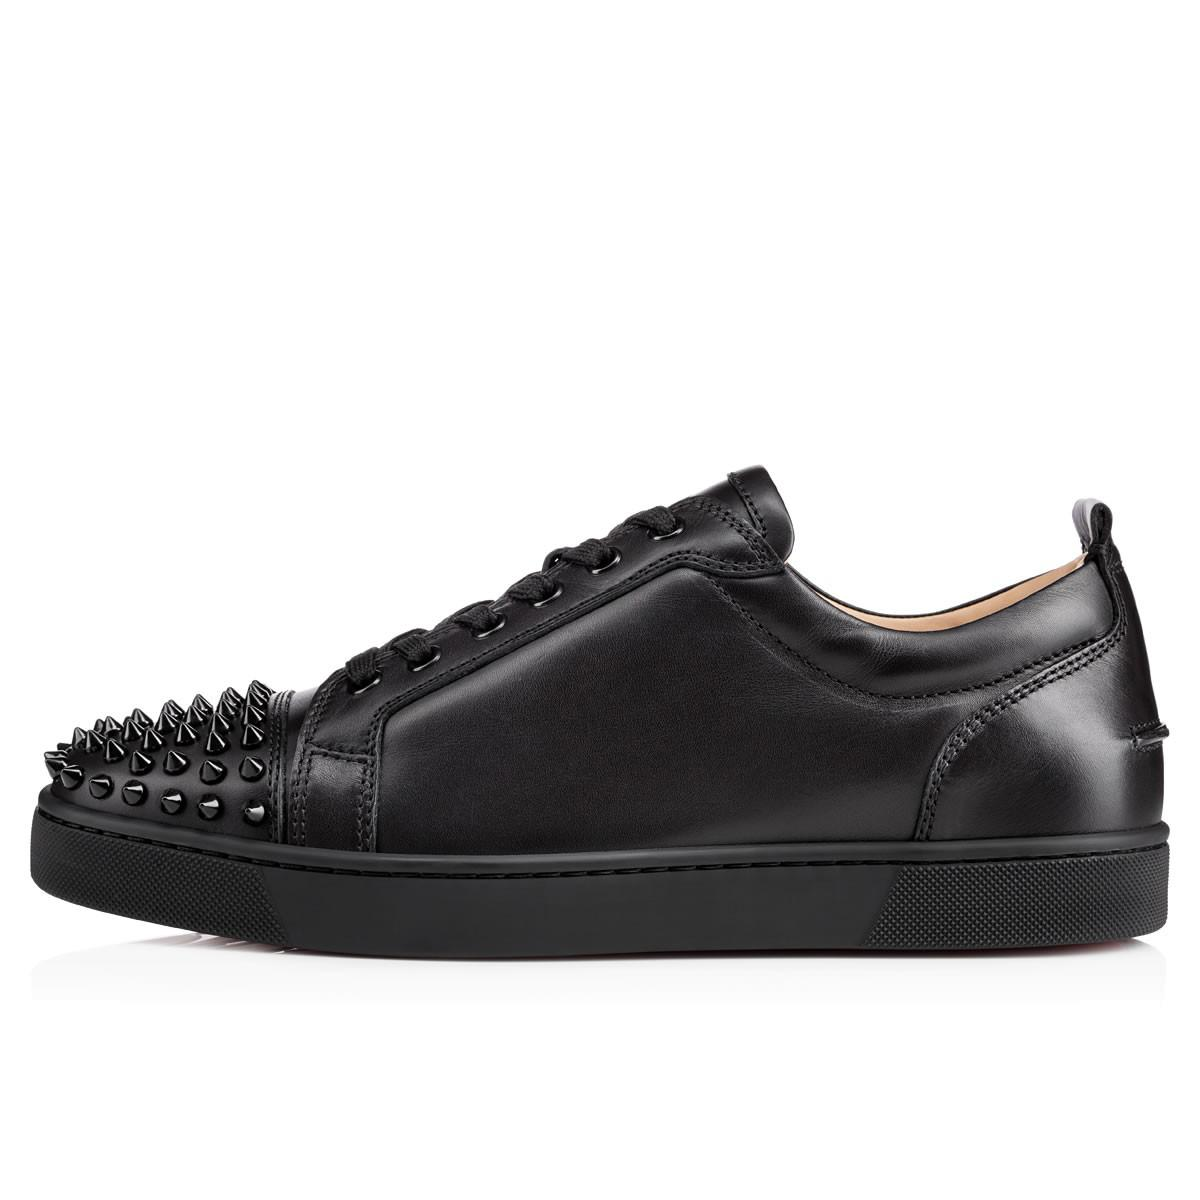 ccd8af21152d Christian Louboutin - Black Louis Junior Spikes Leather Sneakers for Men -  Lyst. View fullscreen